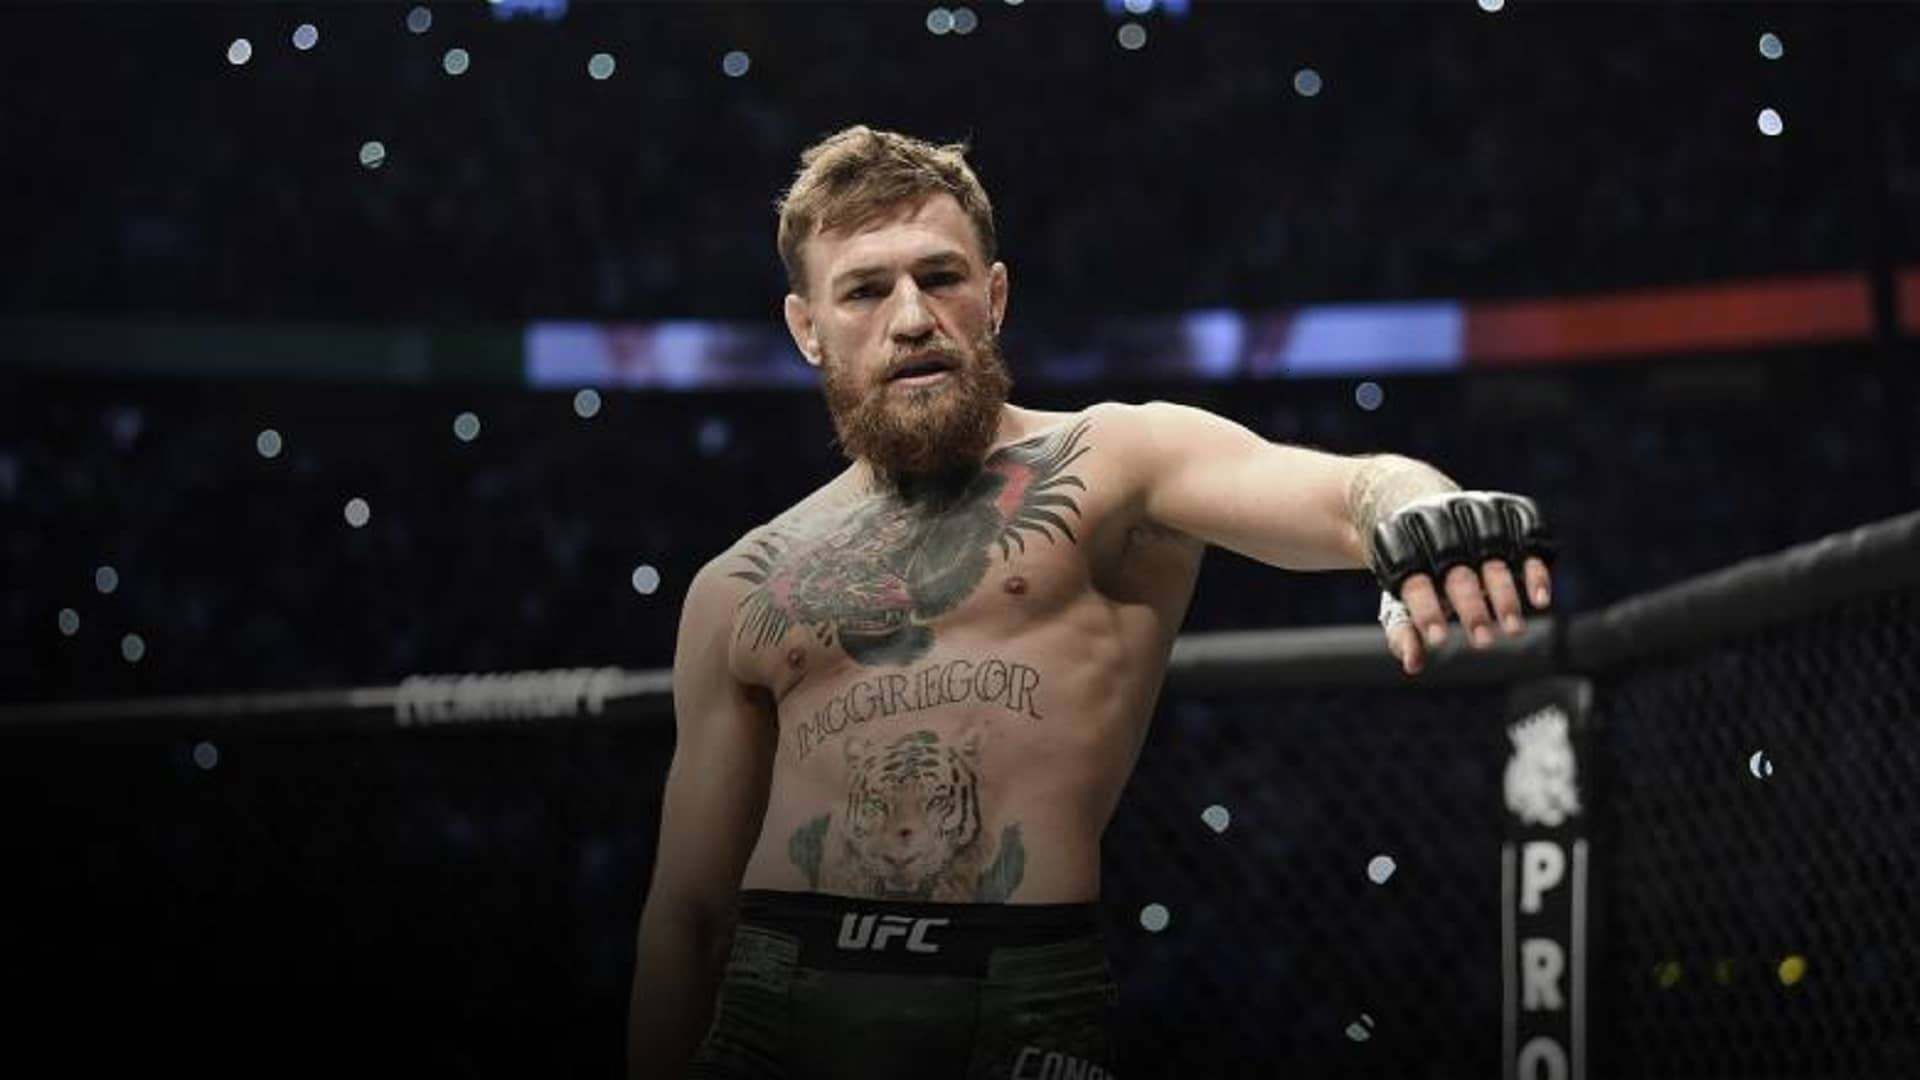 https://lockerroom.in/blog/view/Conor-McGregor-Forbes-List-Ronaldo-Messi